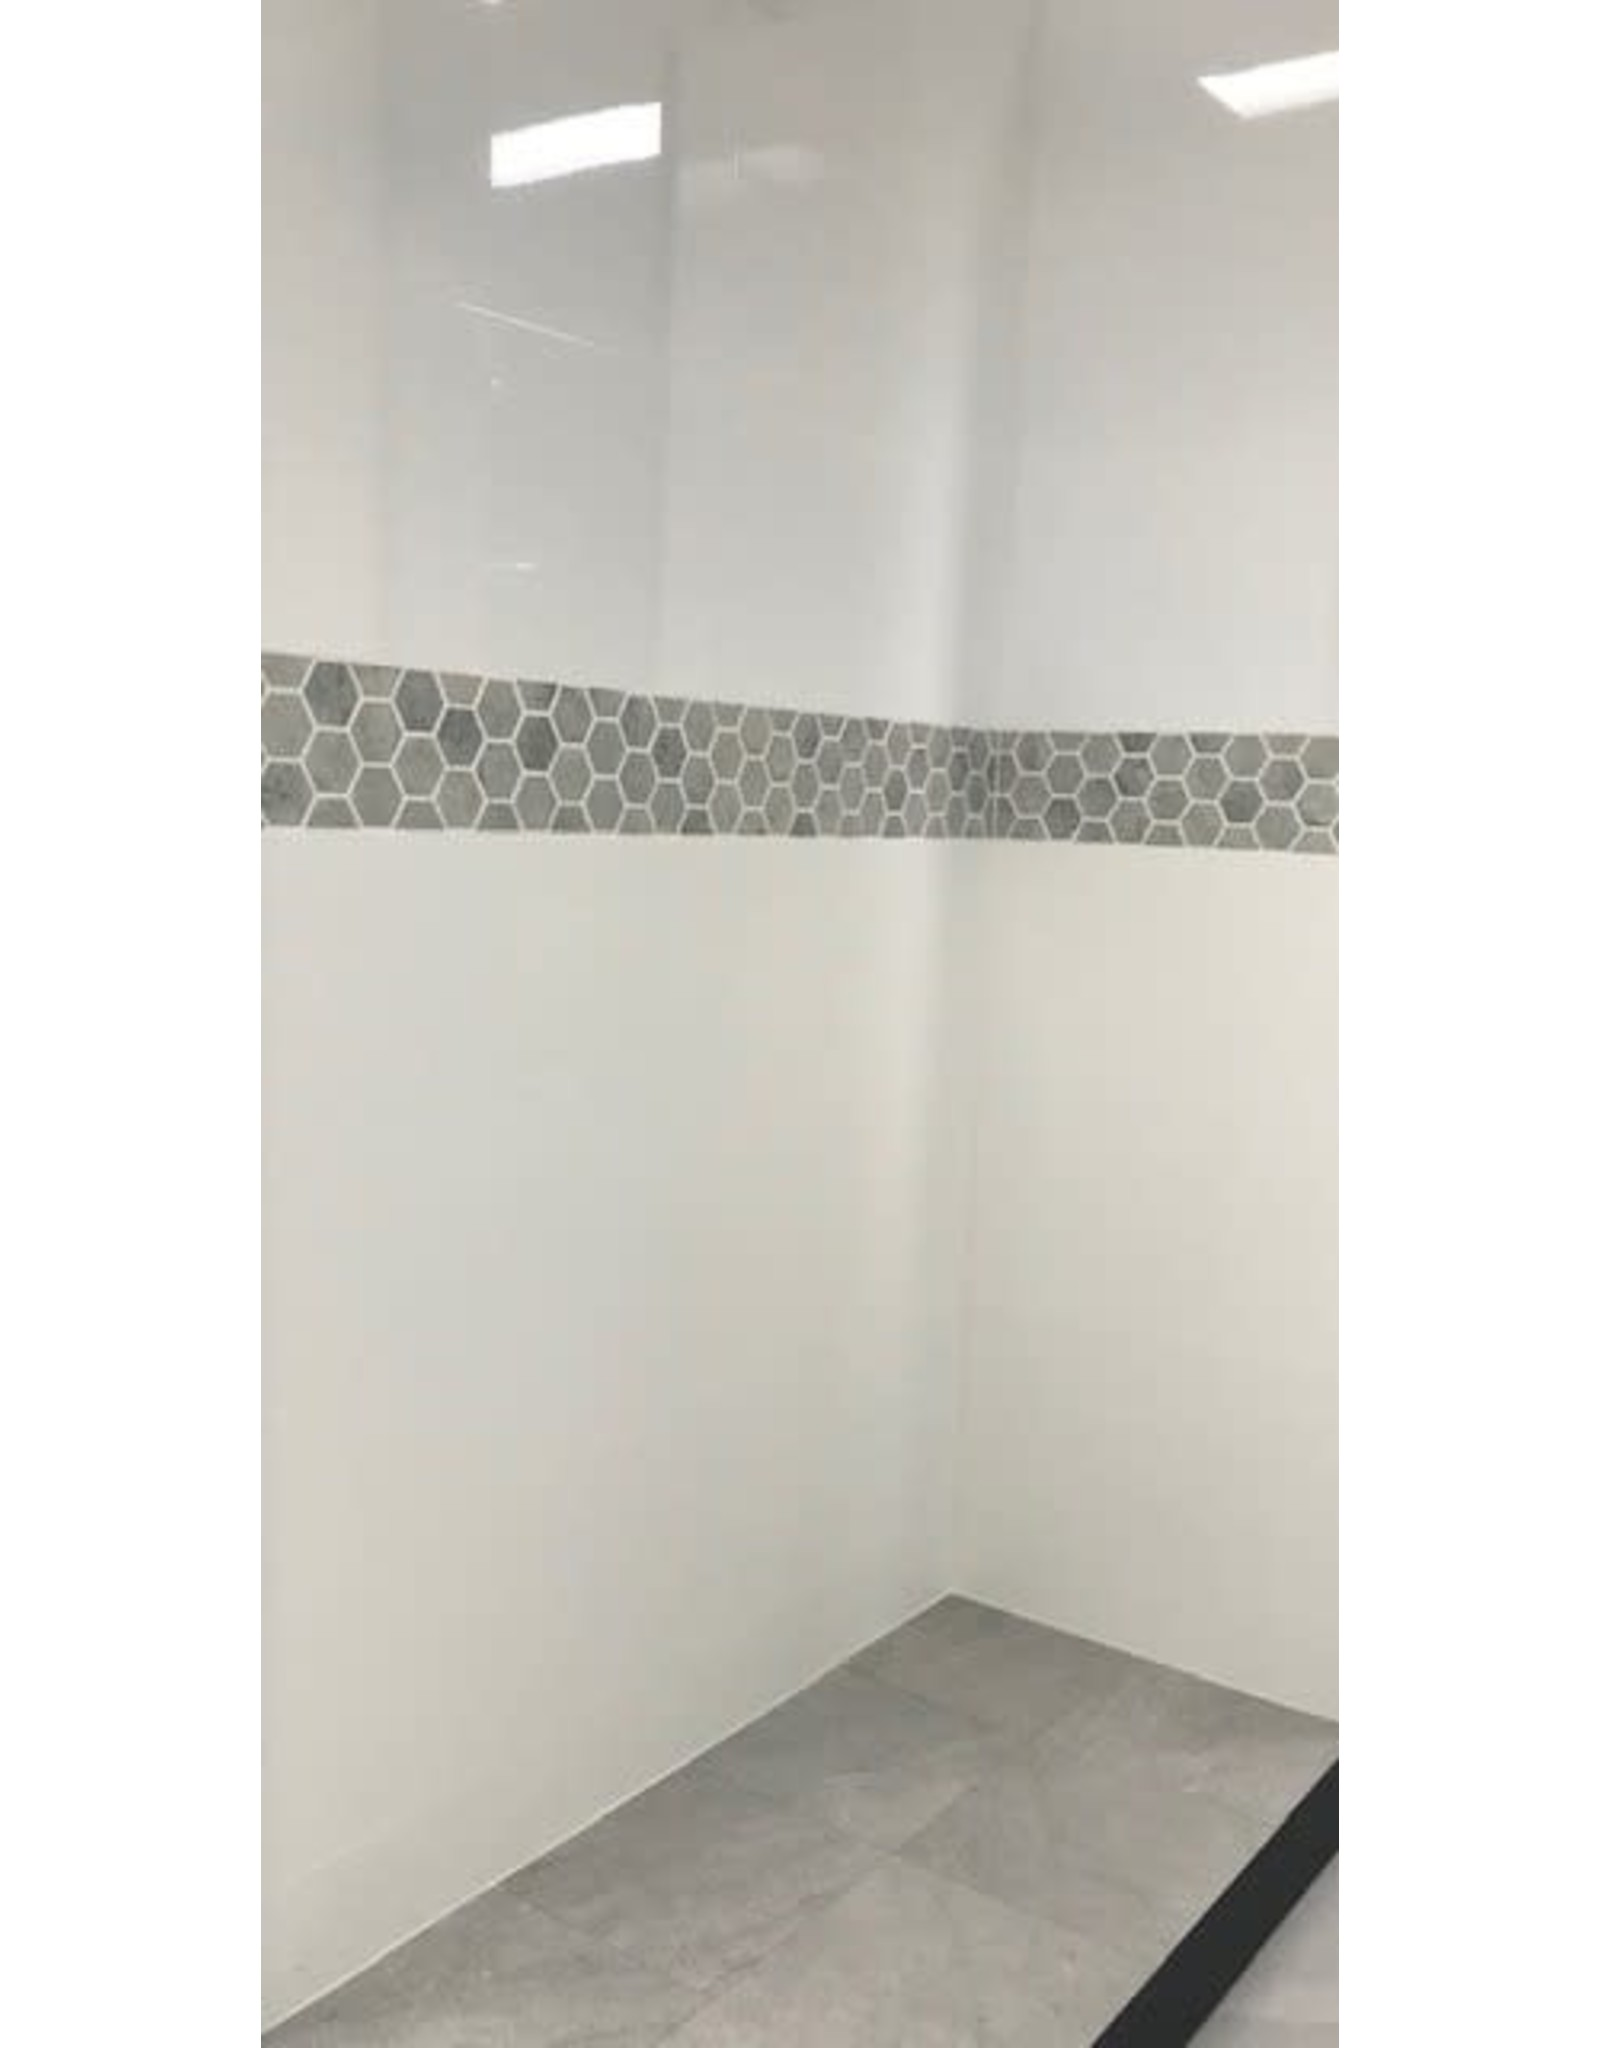 Eternity Tiles 300x600, Gloss White Rectified Wall Tile, Price Per Piece